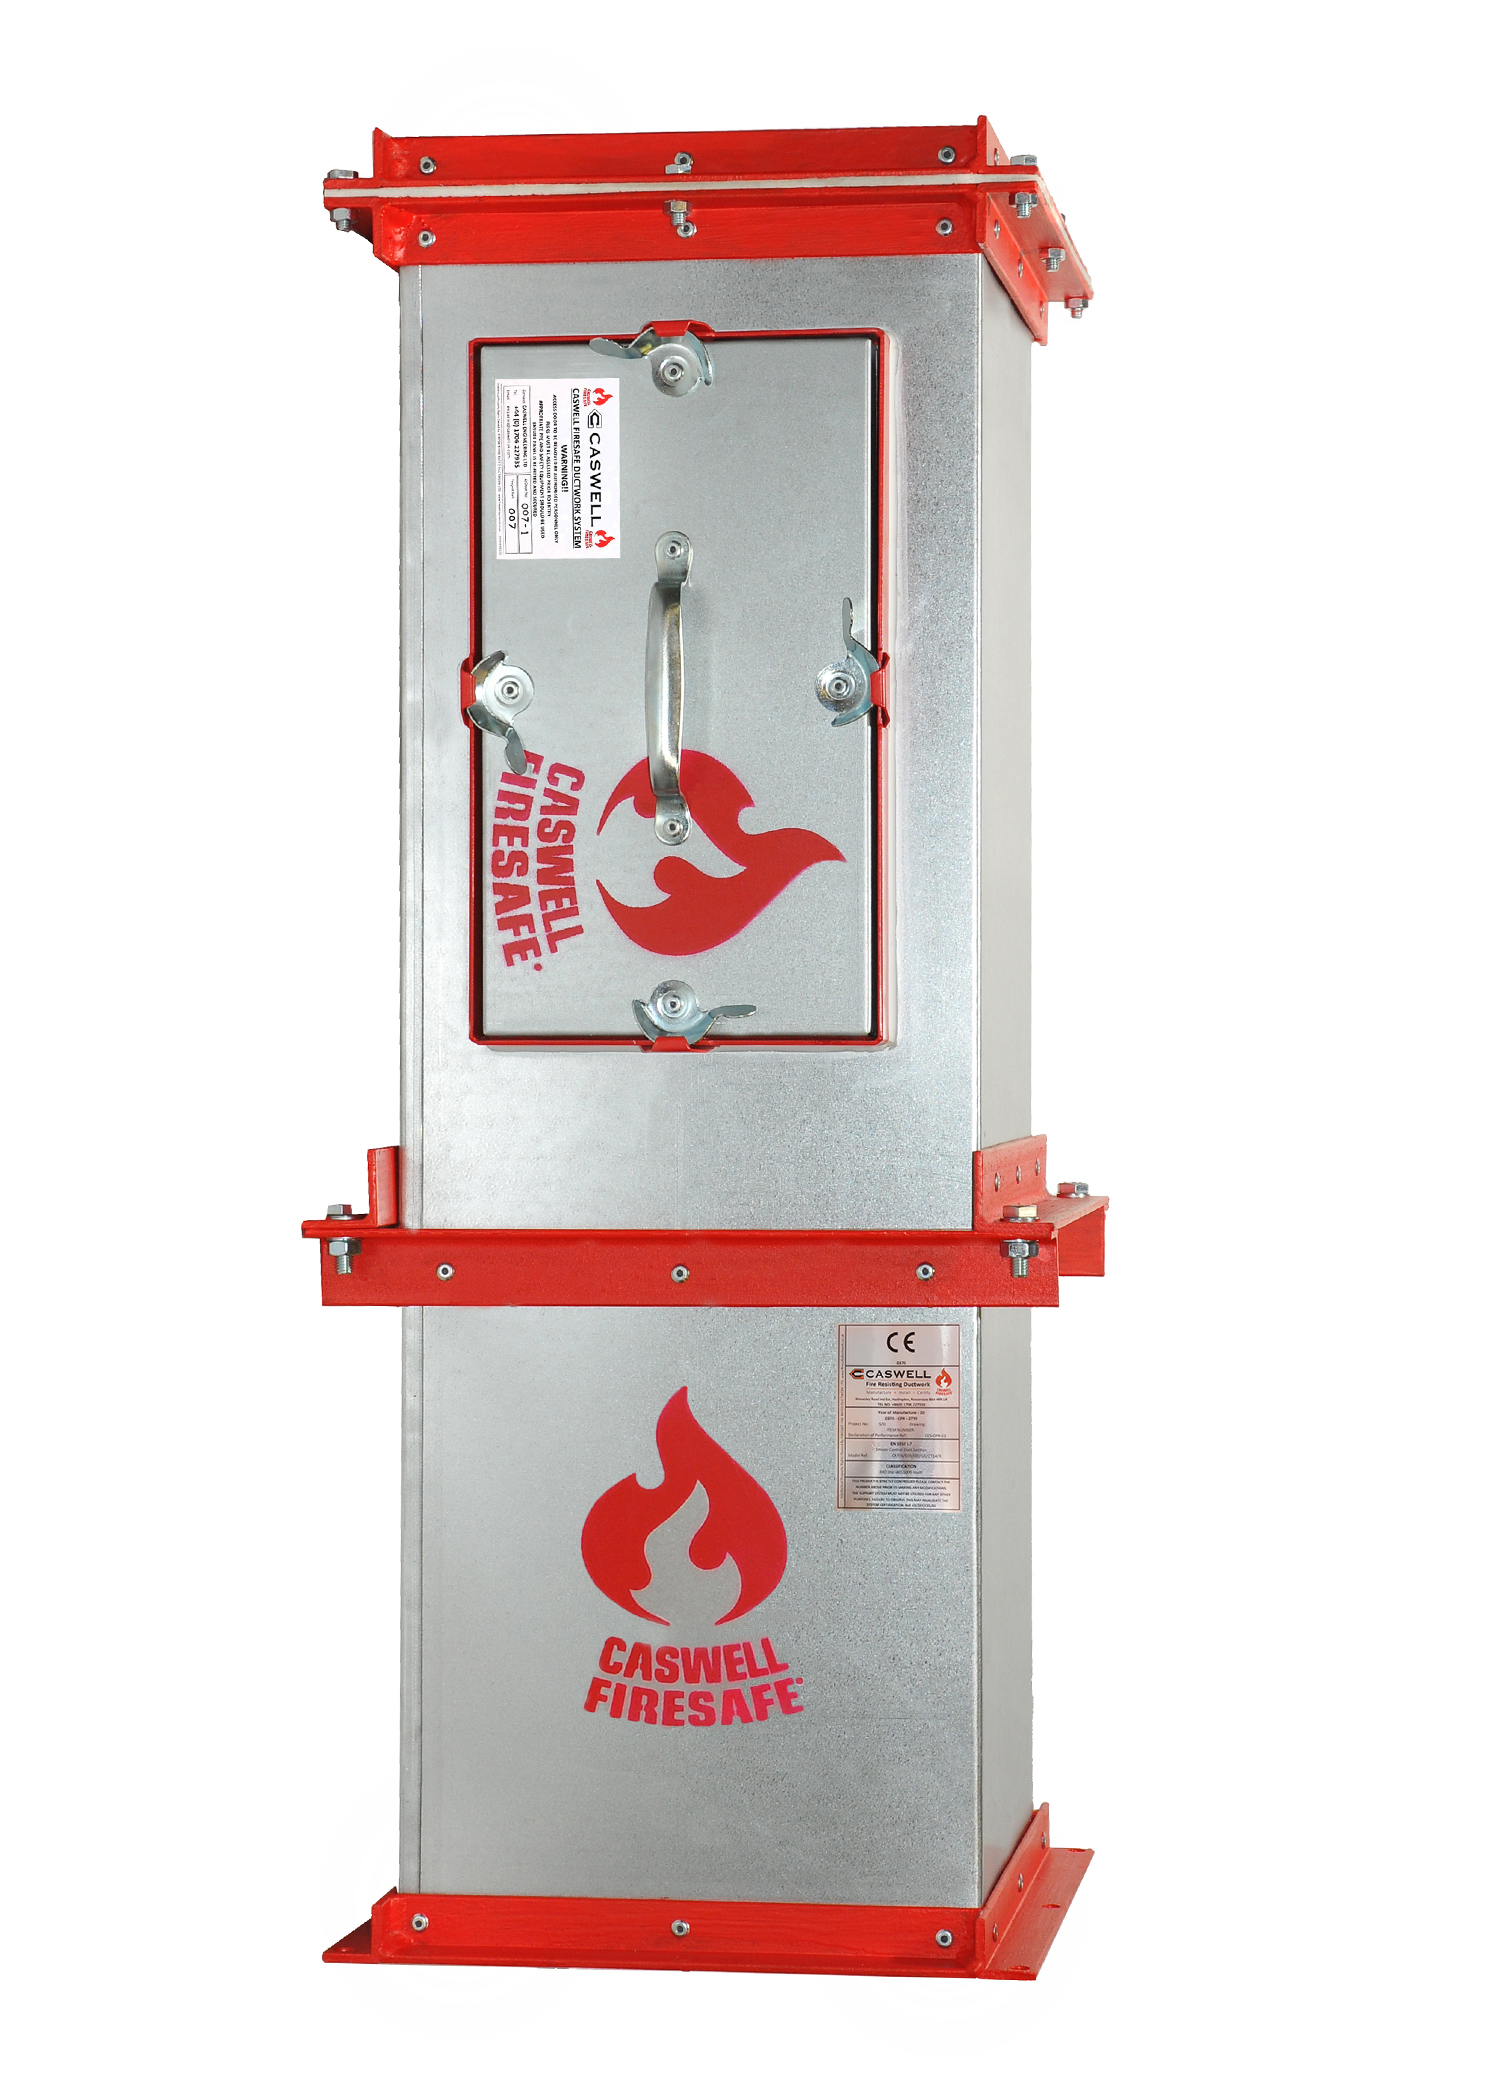 CASWELL FIRESAFE® rectangular, non-coated fire resisting ductwork (EN 1366-1 & 8 specification)